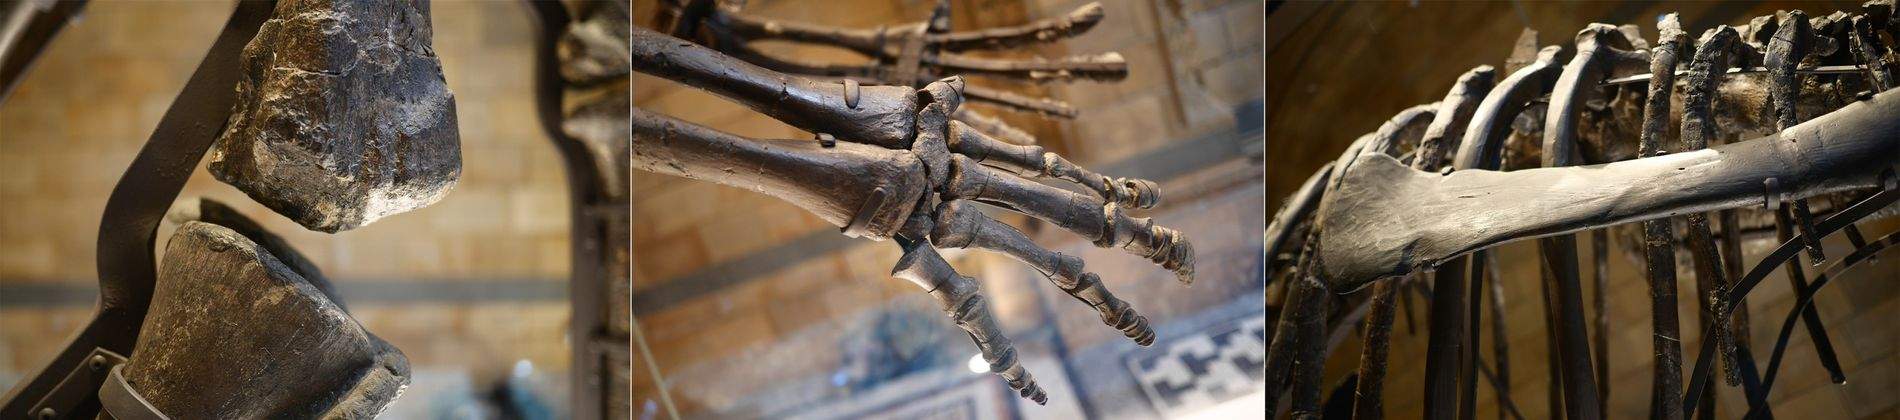 The armature of the fossil dinosaur is subtly visible on display – and has been designed to allow easy assembly and reassembly.